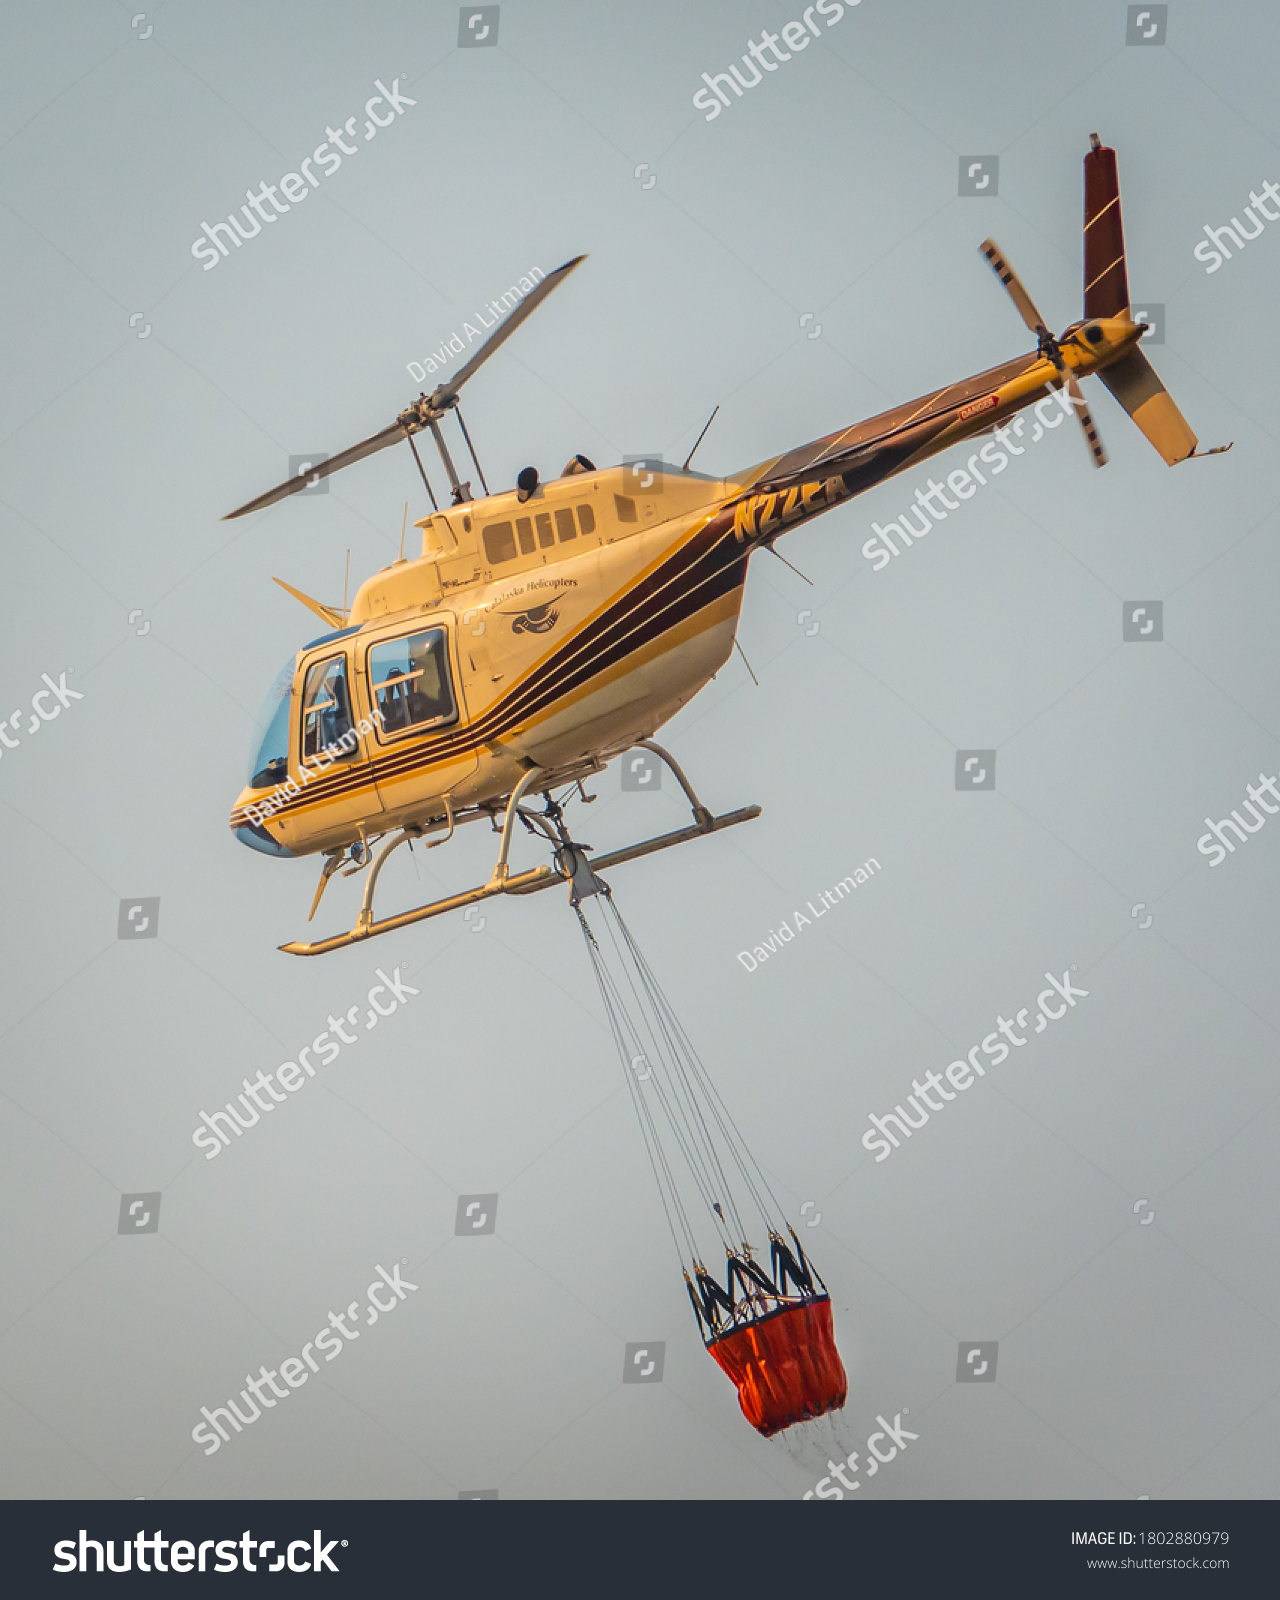 stock-photo-salinas-california-august-a-cal-fire-helicopter-pilot-carries-a-bucket-of-water-to-1802880979.jpg